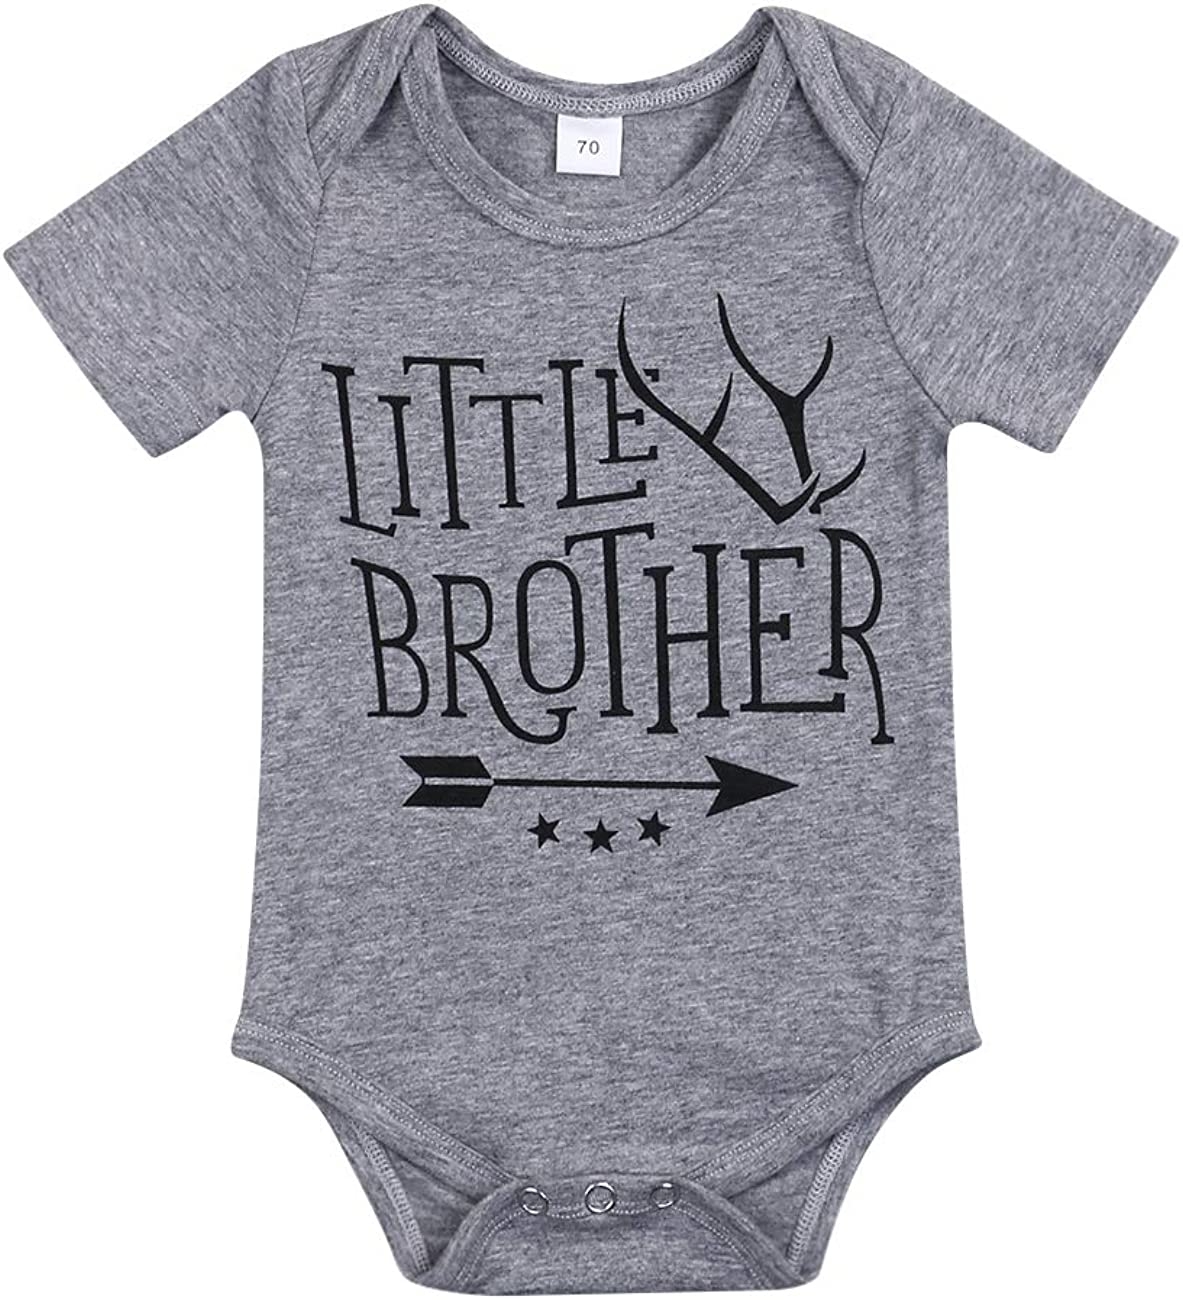 Toddler Newborn Baby Boys Shirts Romper Bodysuit Big Brother Little Brother Tops Sibling Gifts Kids Infant Outfits